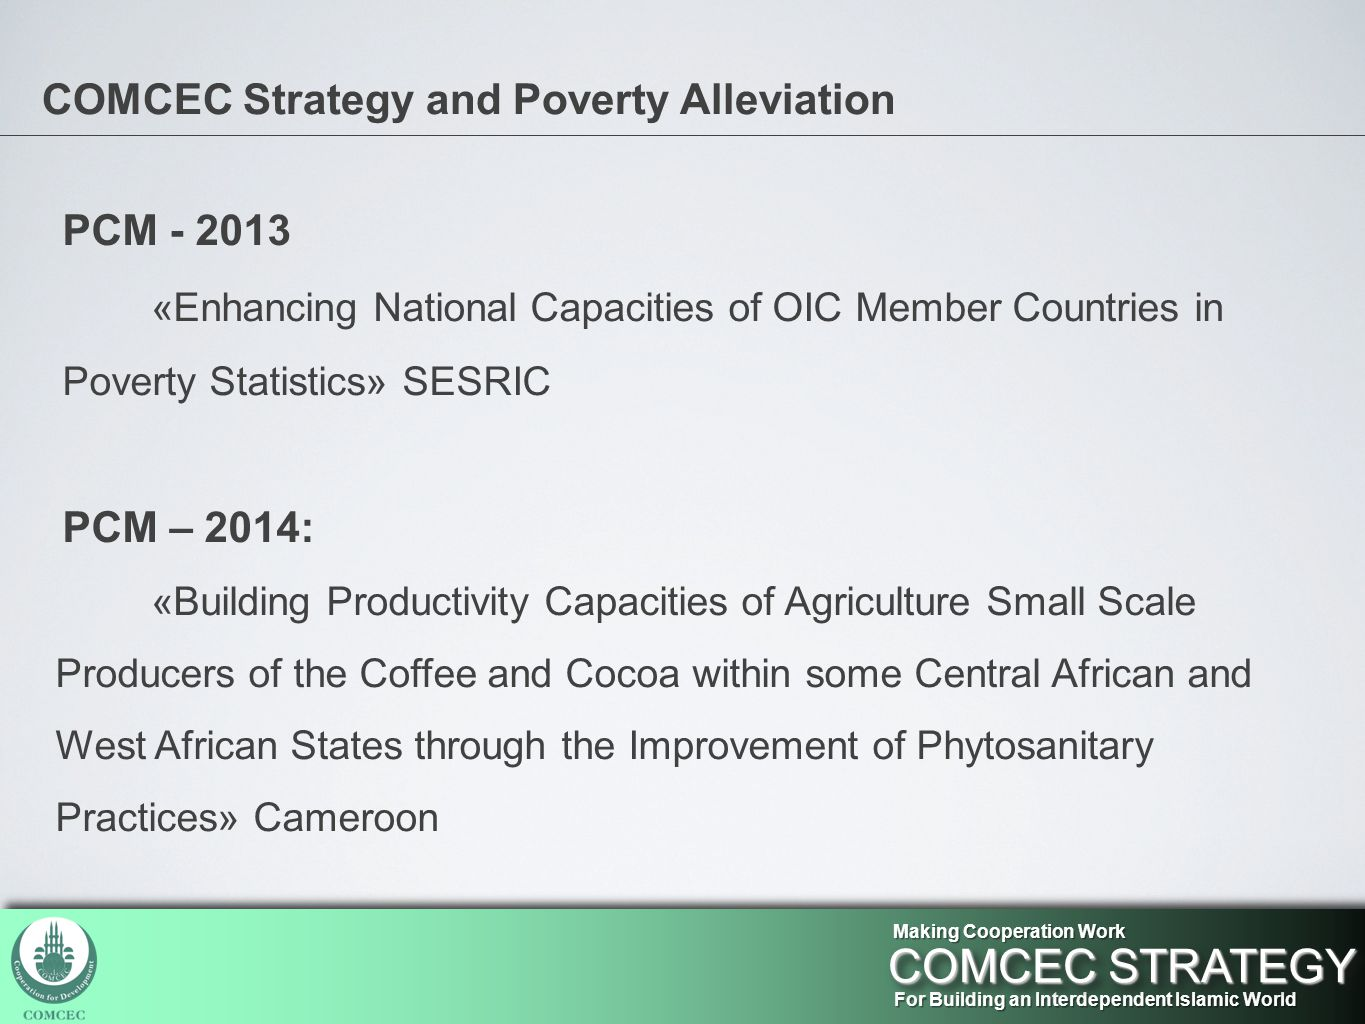 COMCEC Strategy and Poverty Alleviation PCM - 2013 «Enhancing National Capacities of OIC Member Countries in Poverty Statistics» SESRIC PCM – 2014: «Building Productivity Capacities of Agriculture Small Scale Producers of the Coffee and Cocoa within some Central African and West African States through the Improvement of Phytosanitary Practices» Cameroon For Building an Interdependent Islamic World COMCEC STRATEGY Making Cooperation Work